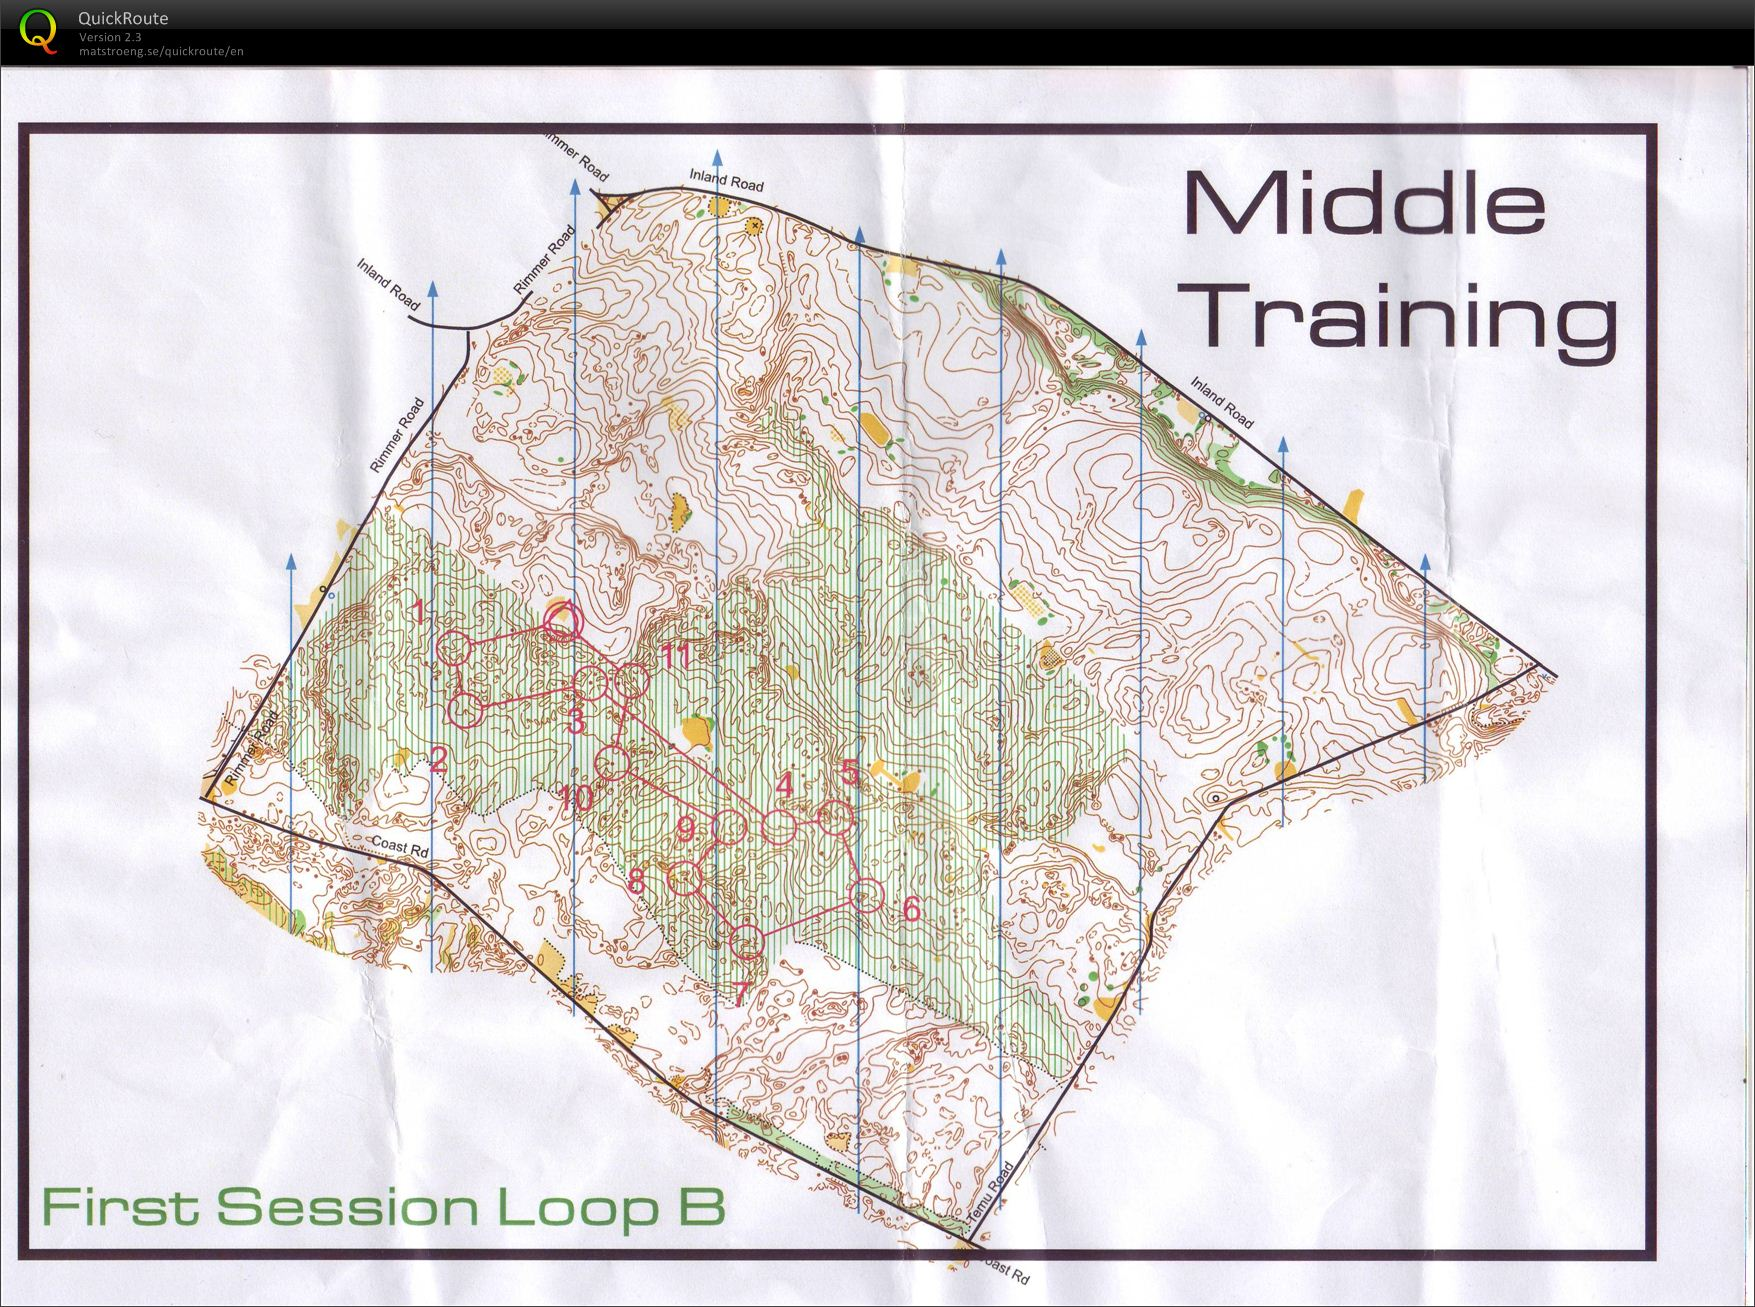 Middle Training - Rimmer Rd (30/03/2012)